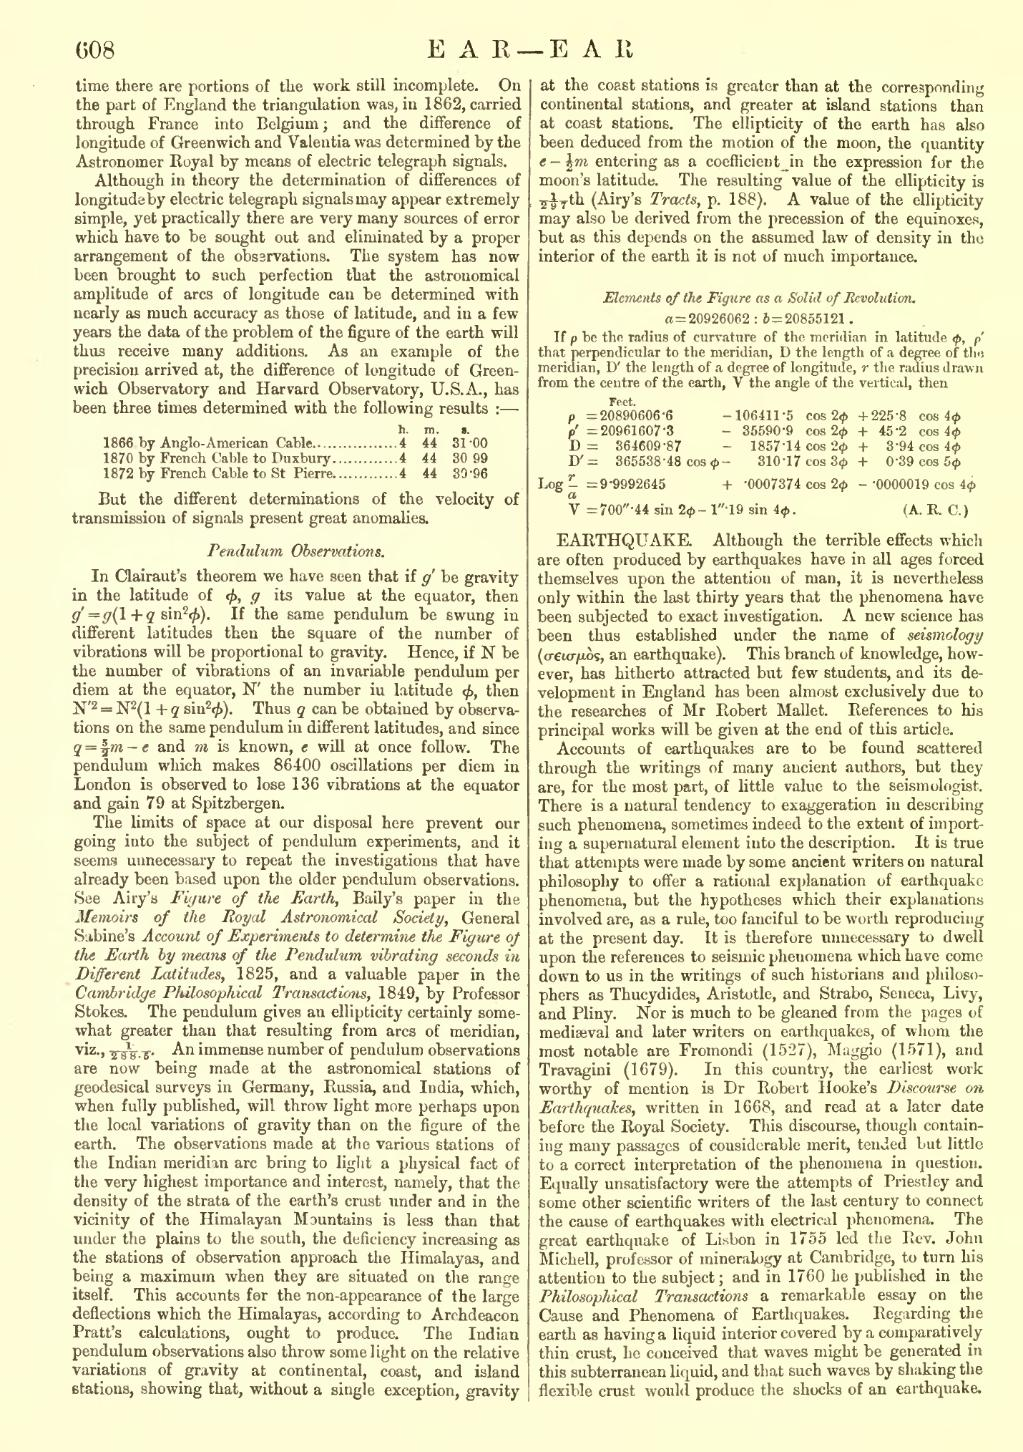 britannica online essay Both style and content in the libri morales (eng trans, moral essays) and  epistulae morales (moral letters) of  stoicism encyclopædia britannica  online.